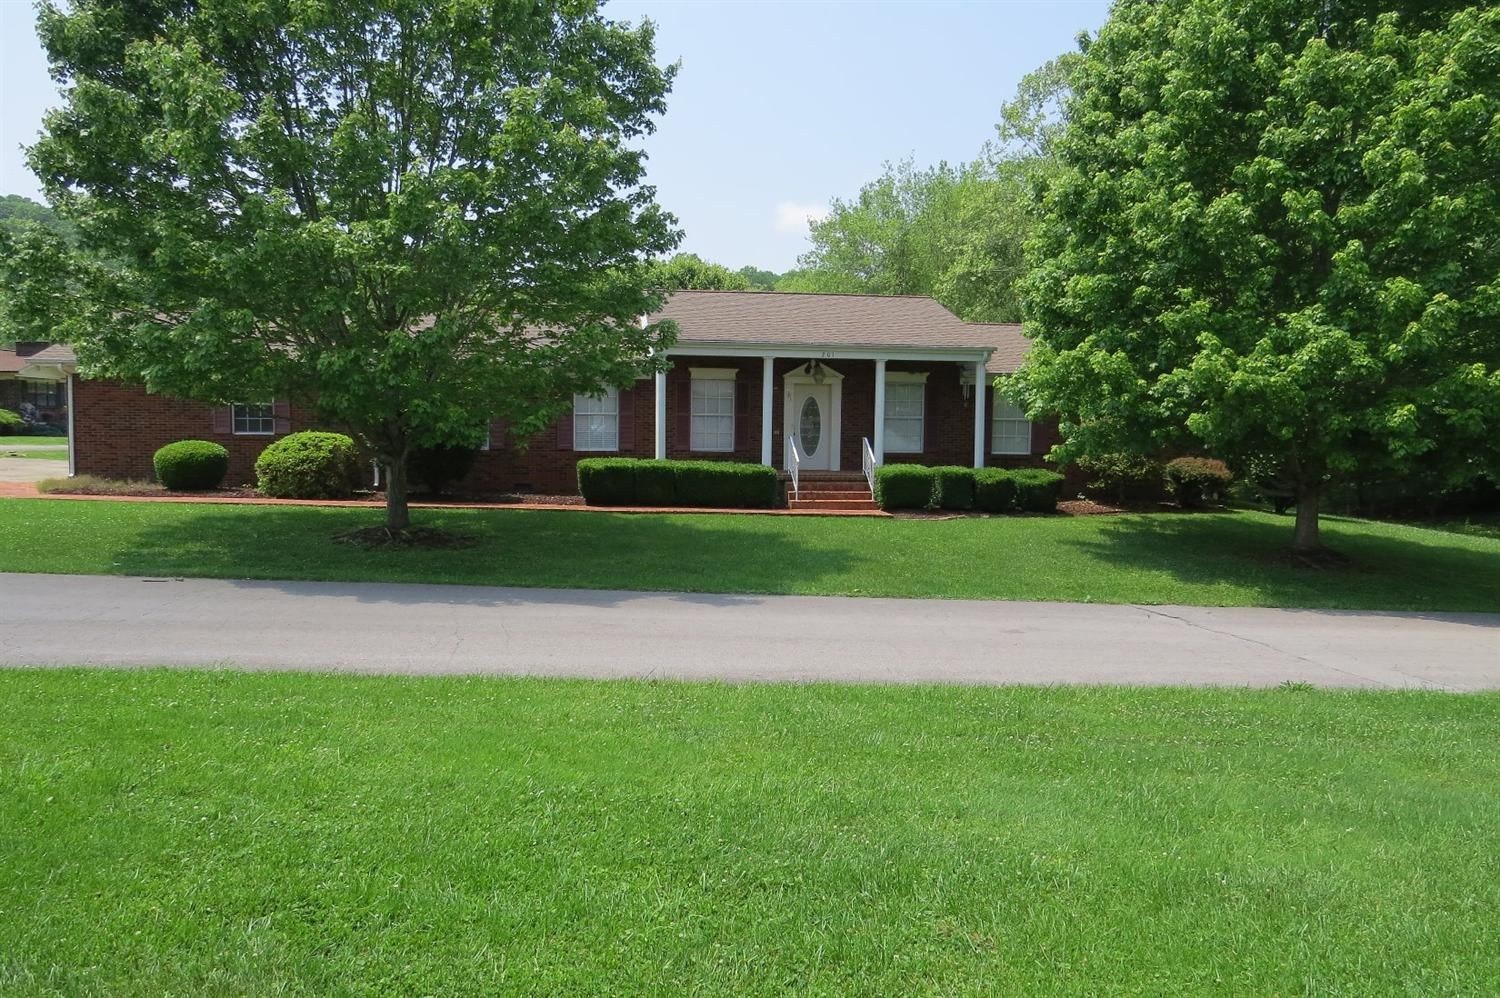 201 Tinsley St Barbourville KY  Public Record  Trulia